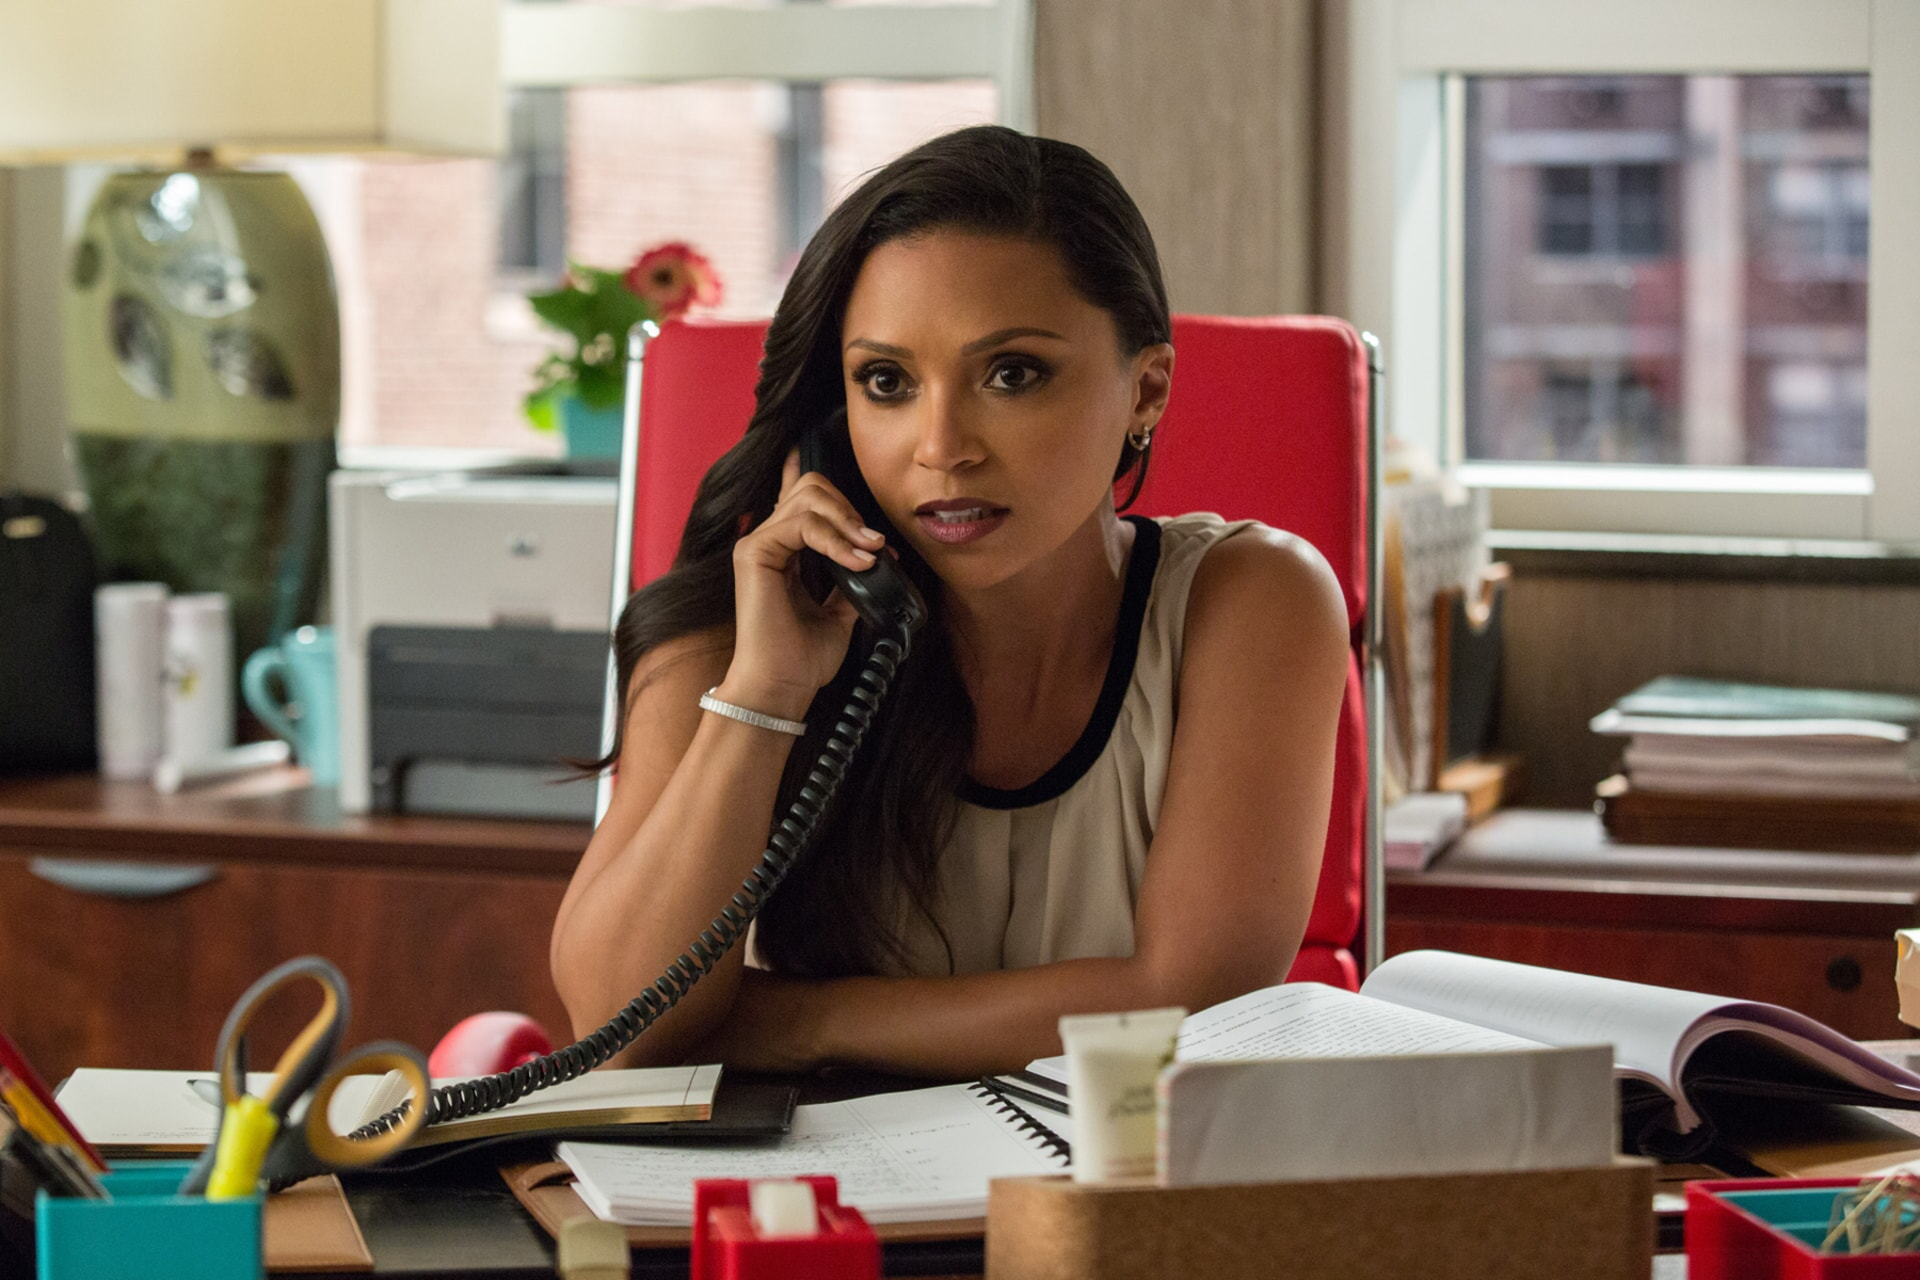 DANIELLE NICOLET as Maggie in an office on the telephone